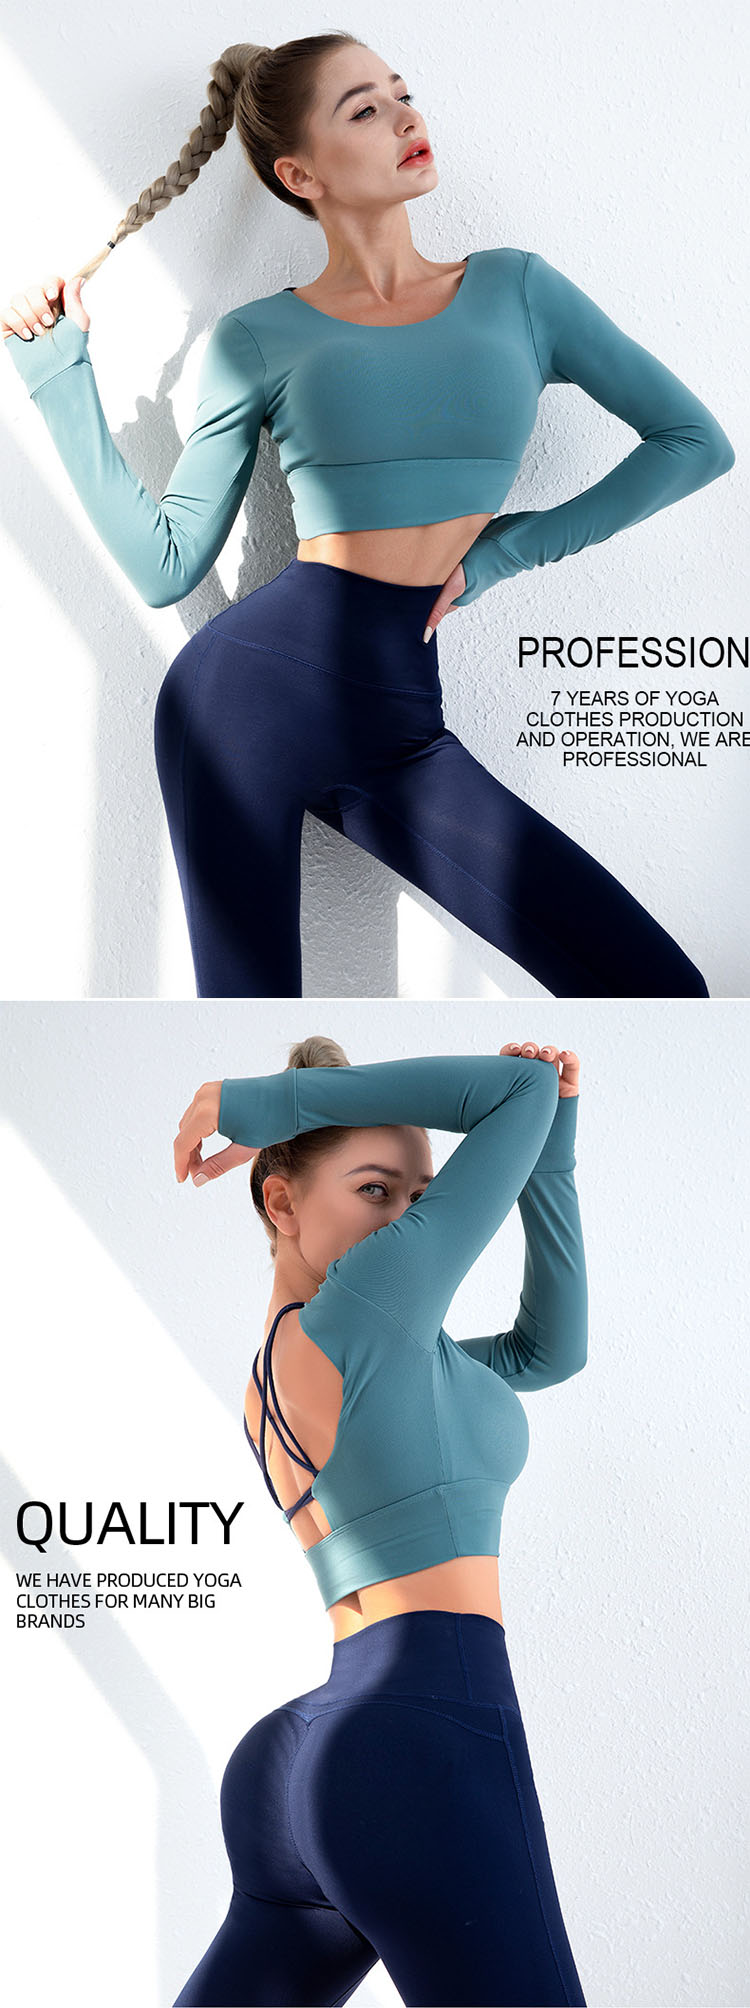 Generously reveals a sexy and beautiful back, accelerating sweating during exercise.